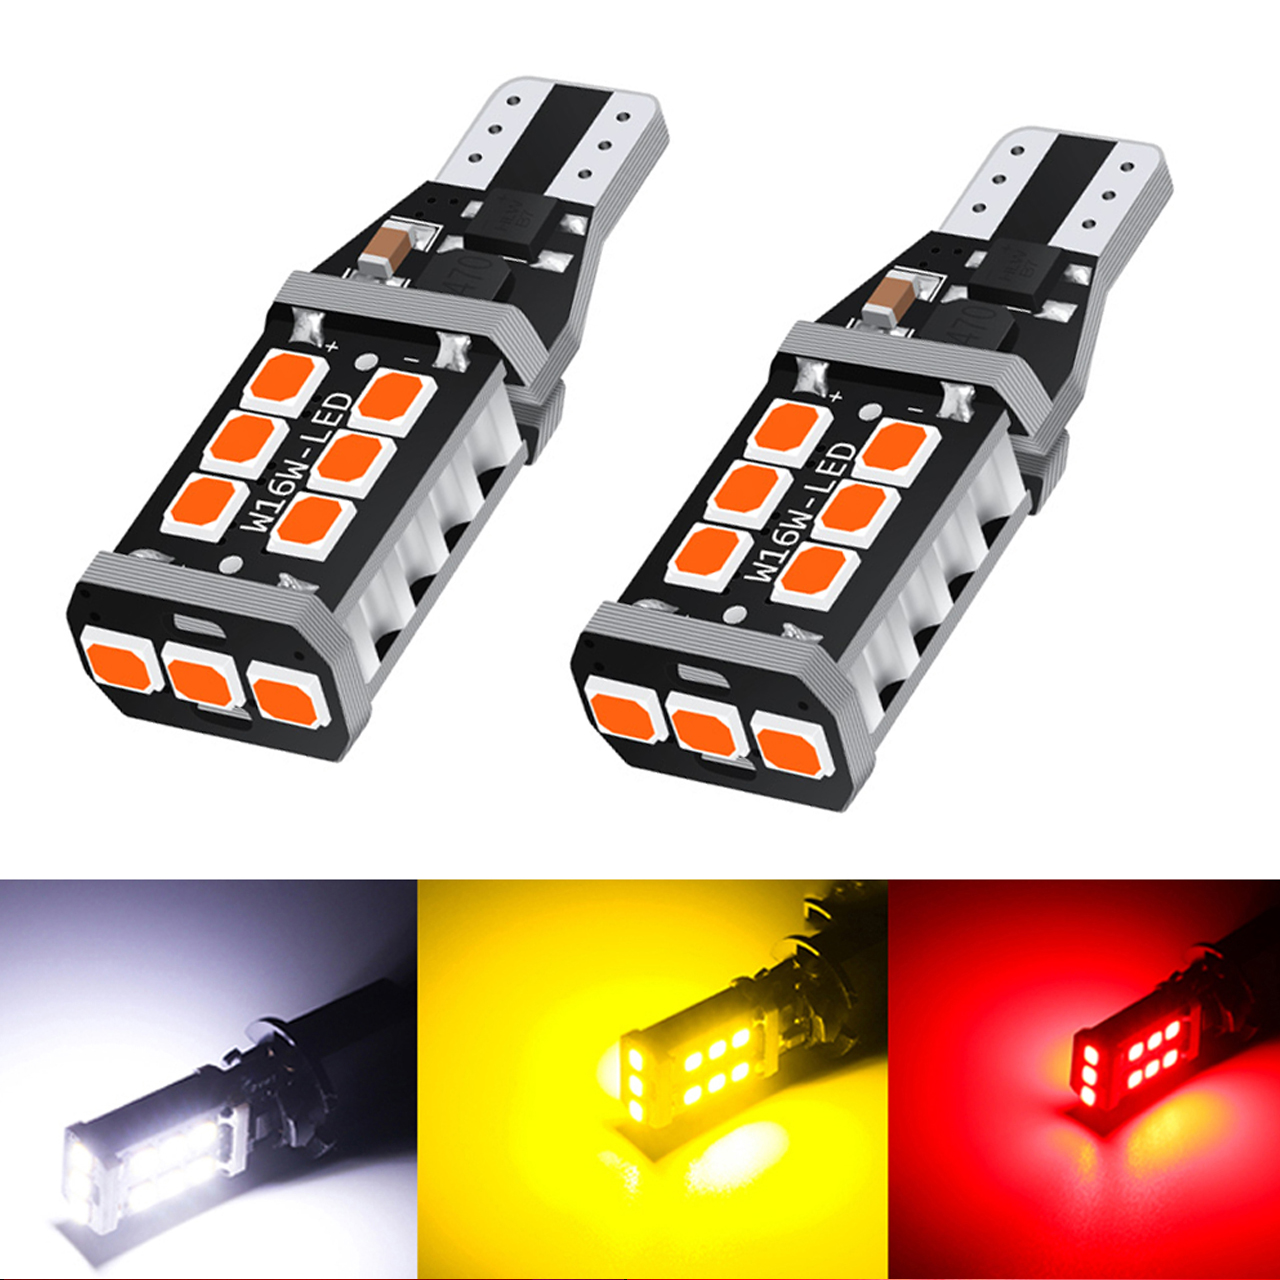 2x T15 T16 Led Canbus No Error Backup Reverse Light Lamp For FOR VW VOLKSWAGEN Passat B7 T15 W16W LED 2835 Chip Car Styling